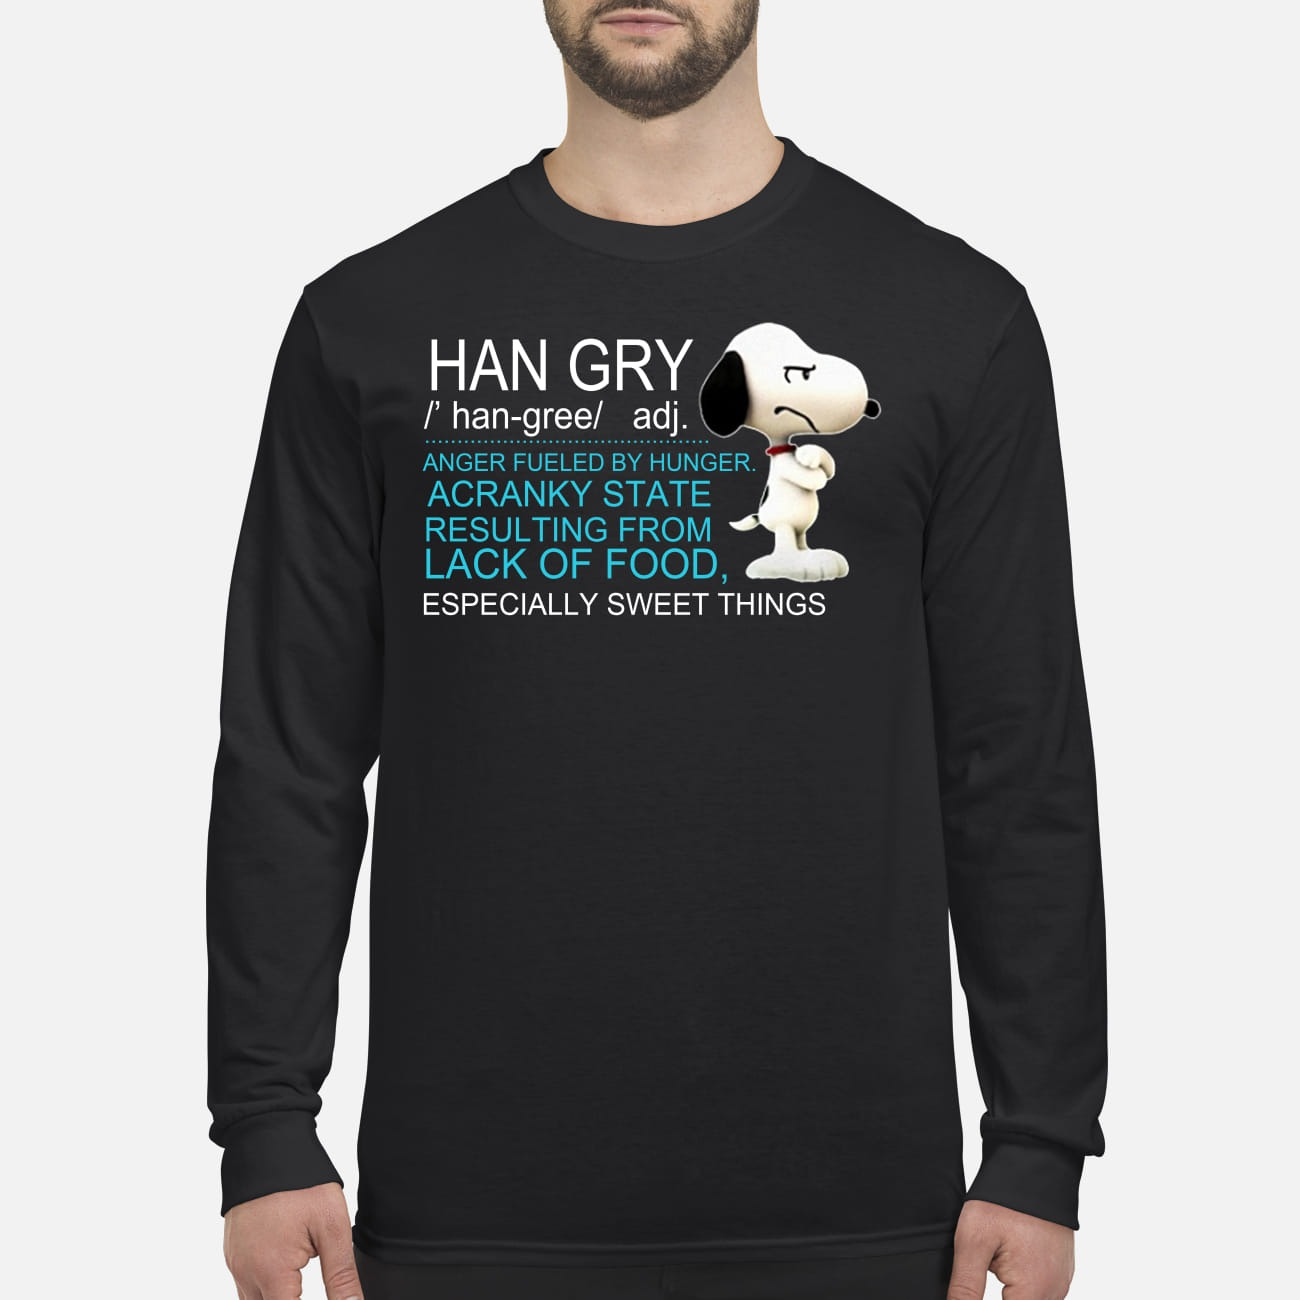 Snoopy han gry anger fueled by hunger acranky state result from lfood men's long sleeved shirt